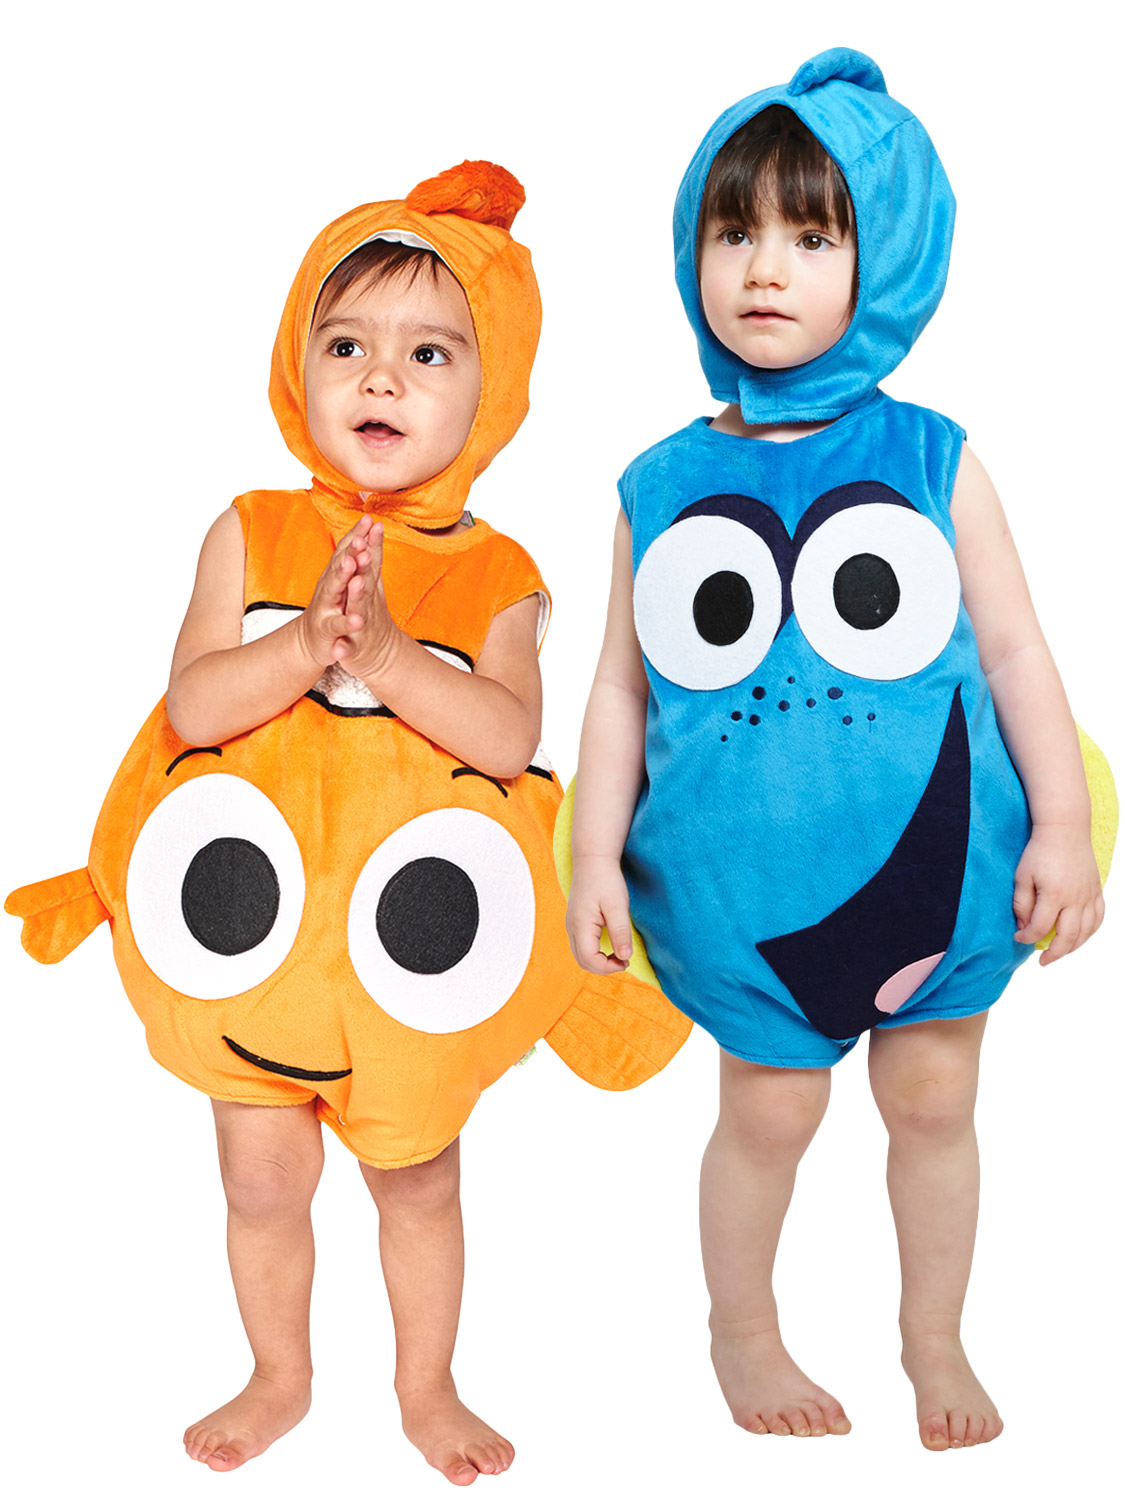 Baby Toddler Disney Finding Nemo Dory Fancy Dress Costume Kids Infant Outfit Hat. Image 2  sc 1 st  eBay & Baby Toddler Disney Finding Nemo Dory Fancy Dress Costume Kids ...